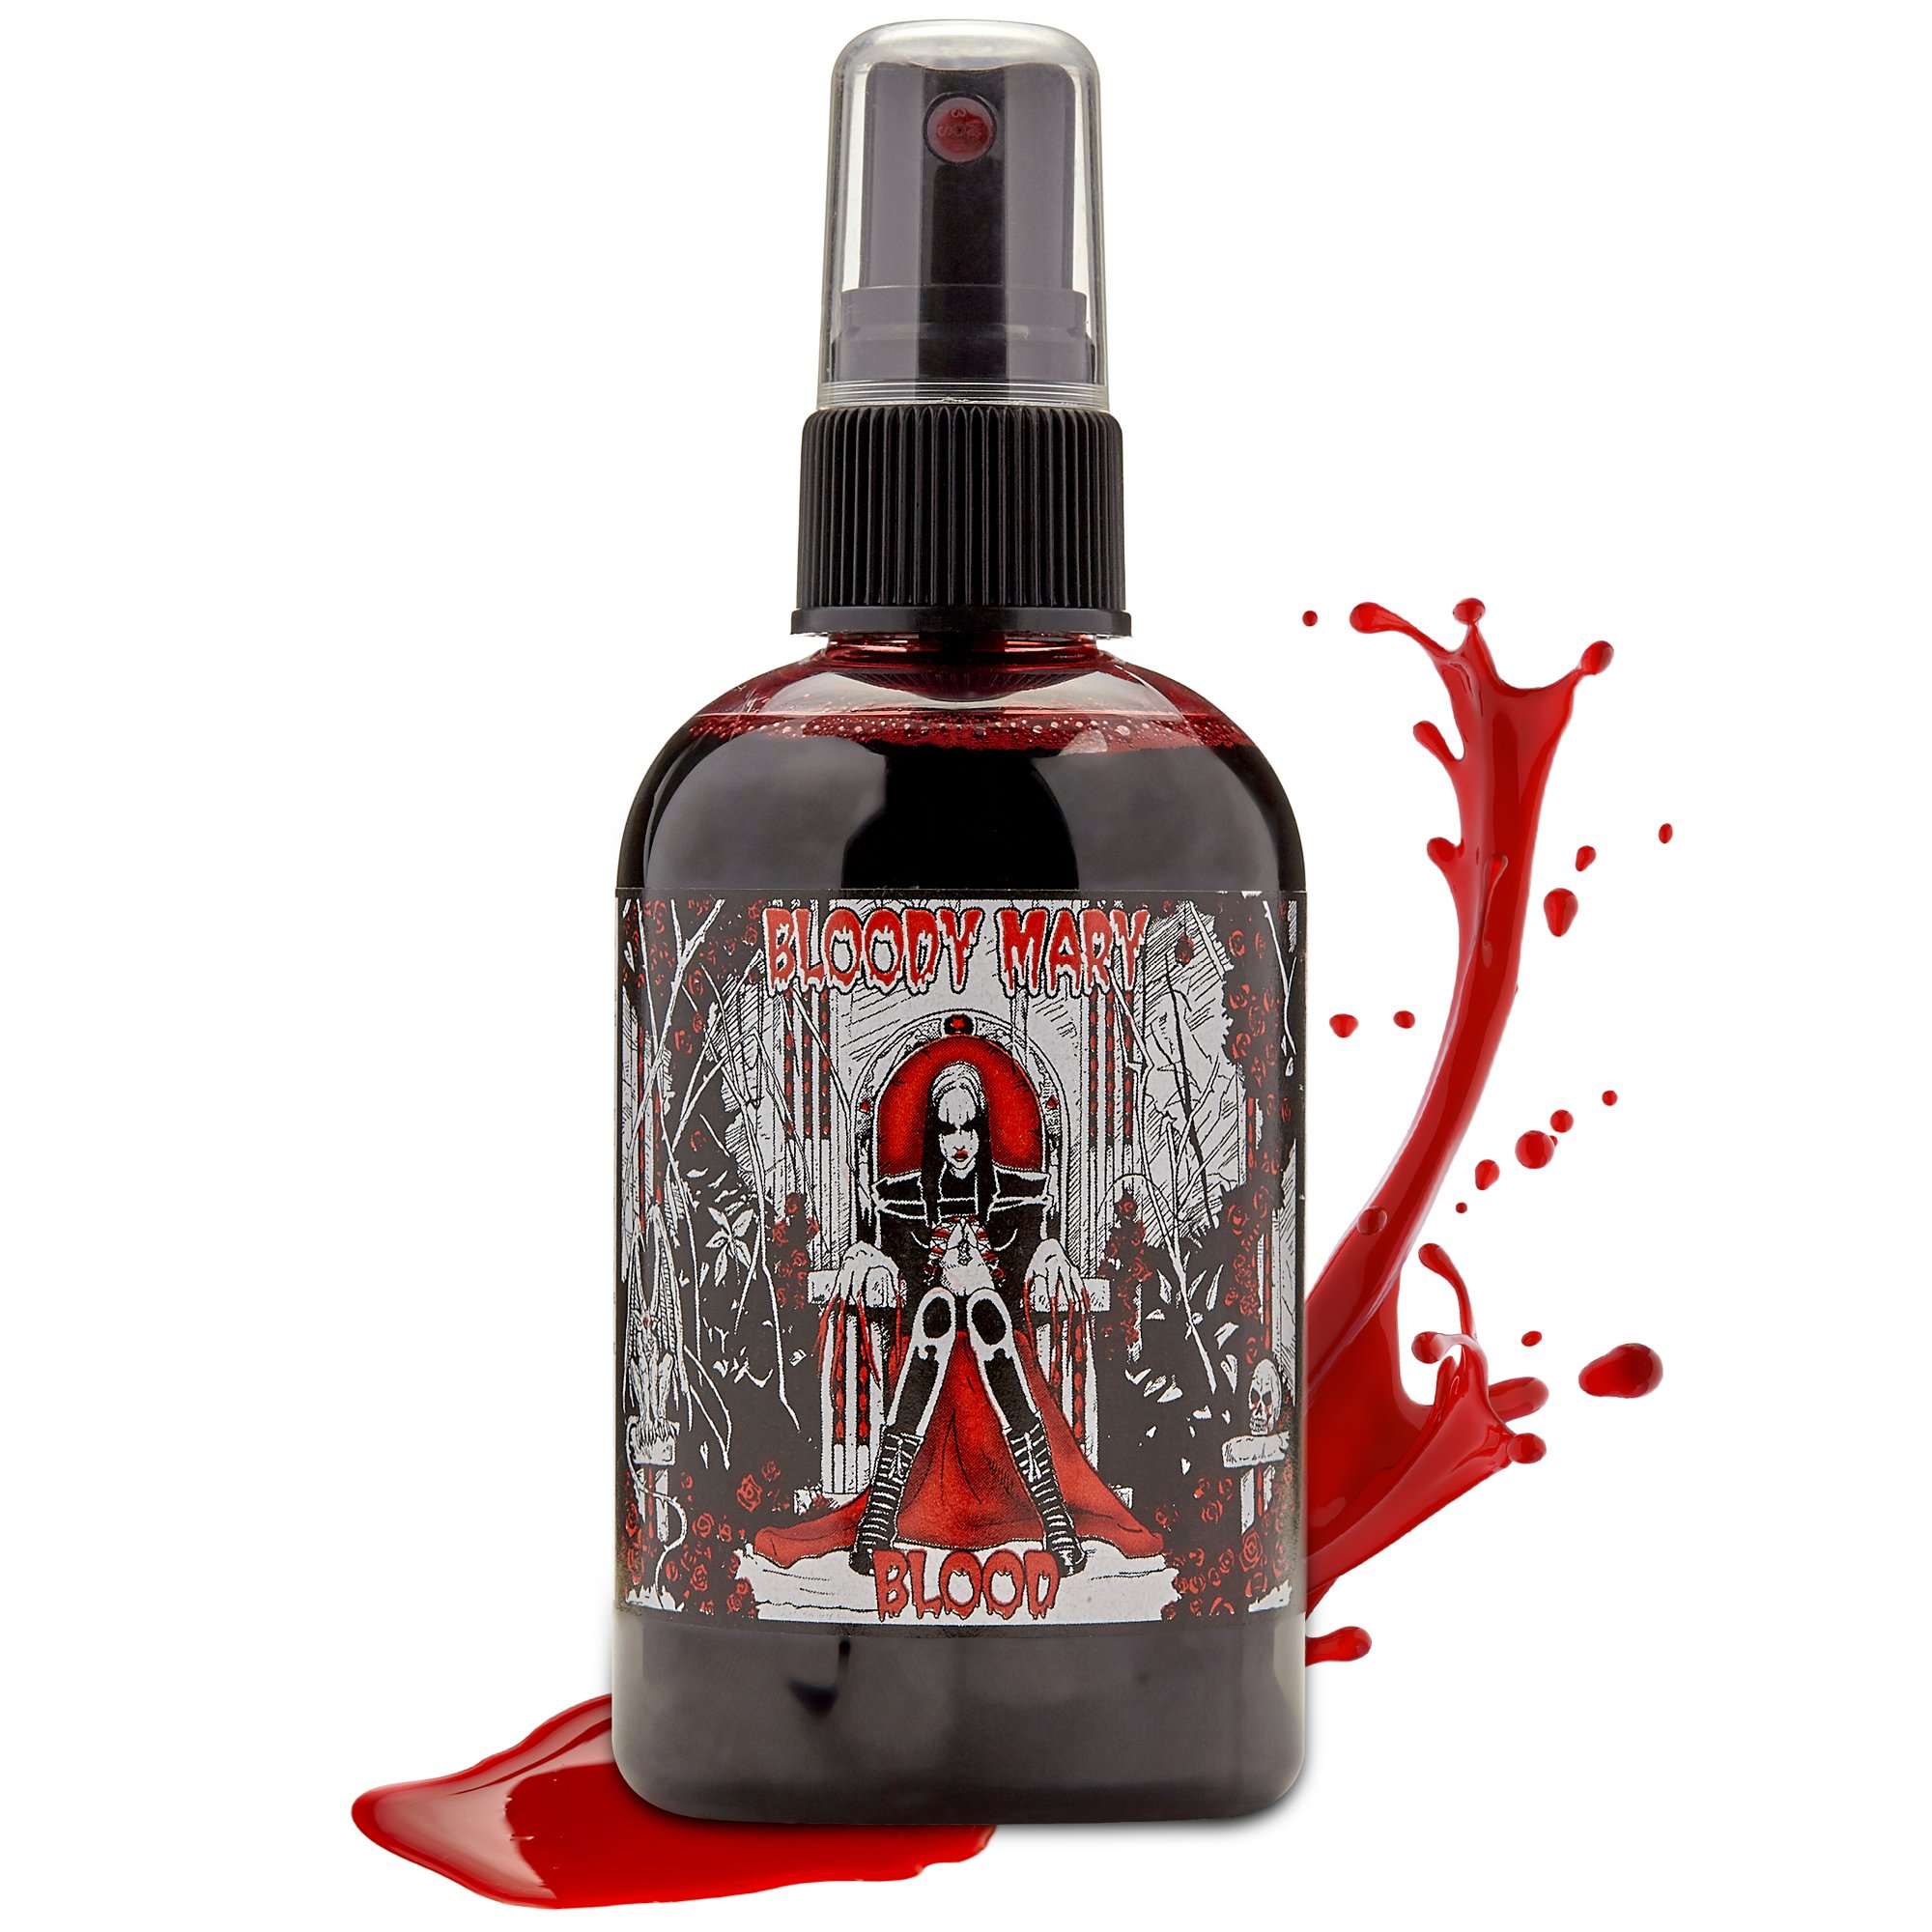 Fake Blood Makeup Spray - For Theater and Costume or Halloween Zombie, Vampire and Monster Dress Up - By Bloody Mary (Large - 4 oz)